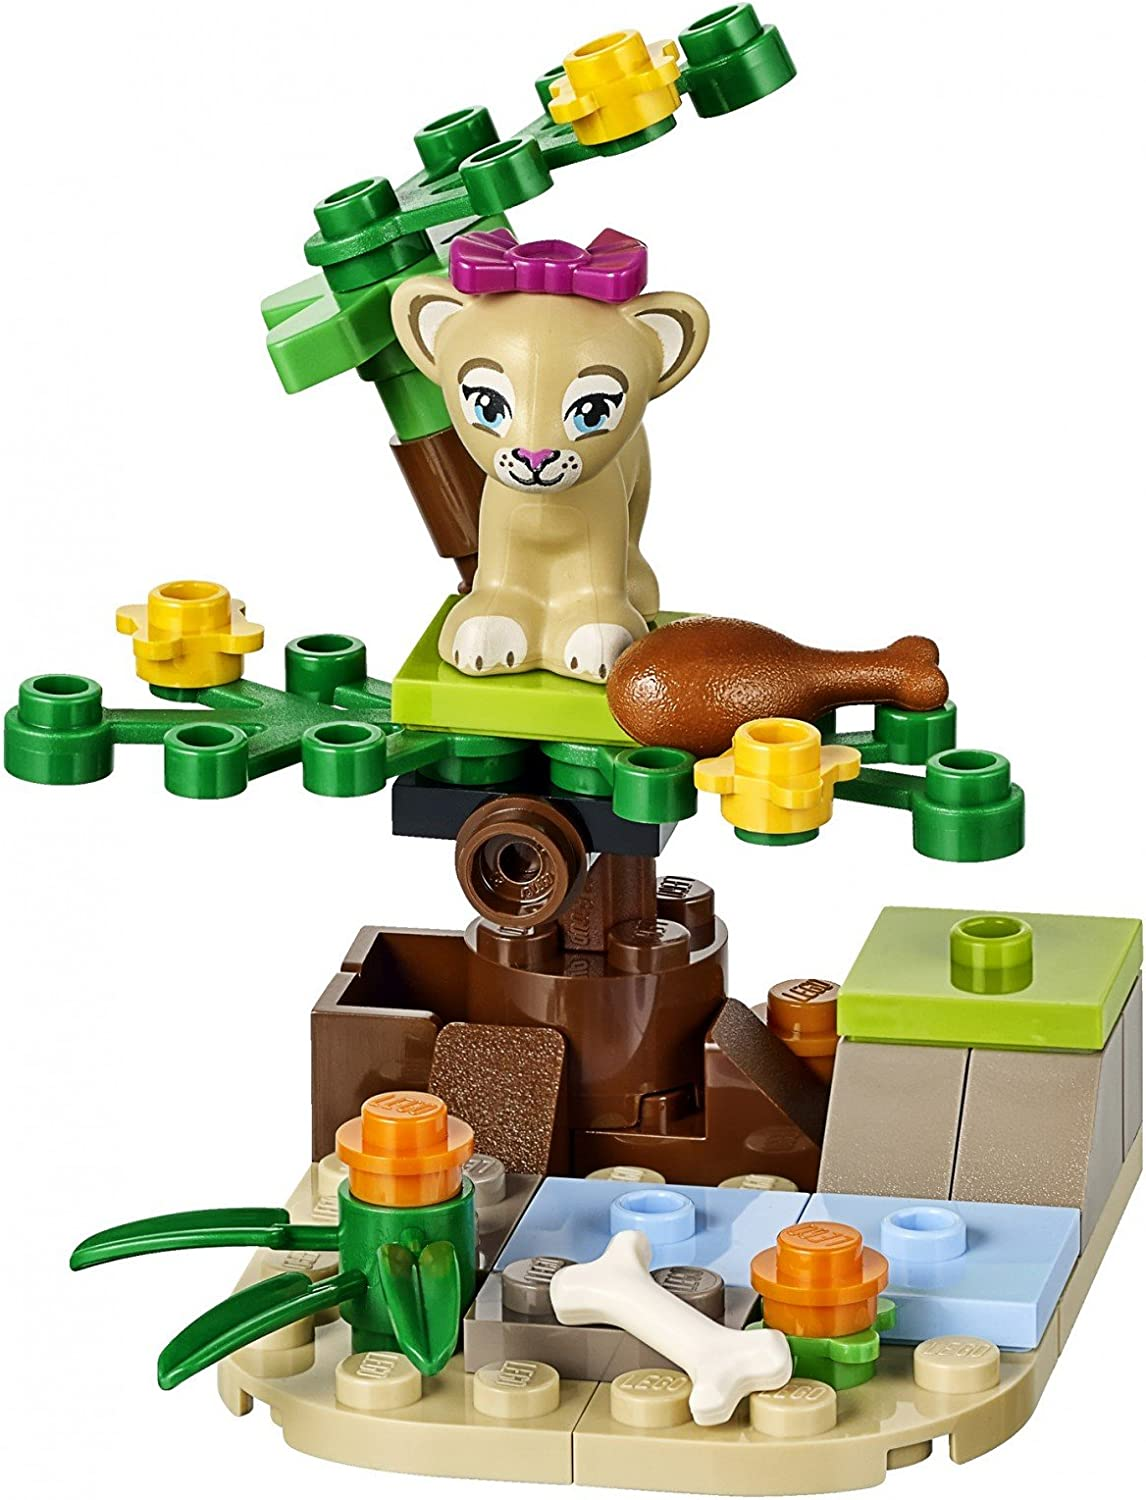 LEGO Friends Lion of The Baby and The Savannah 41048